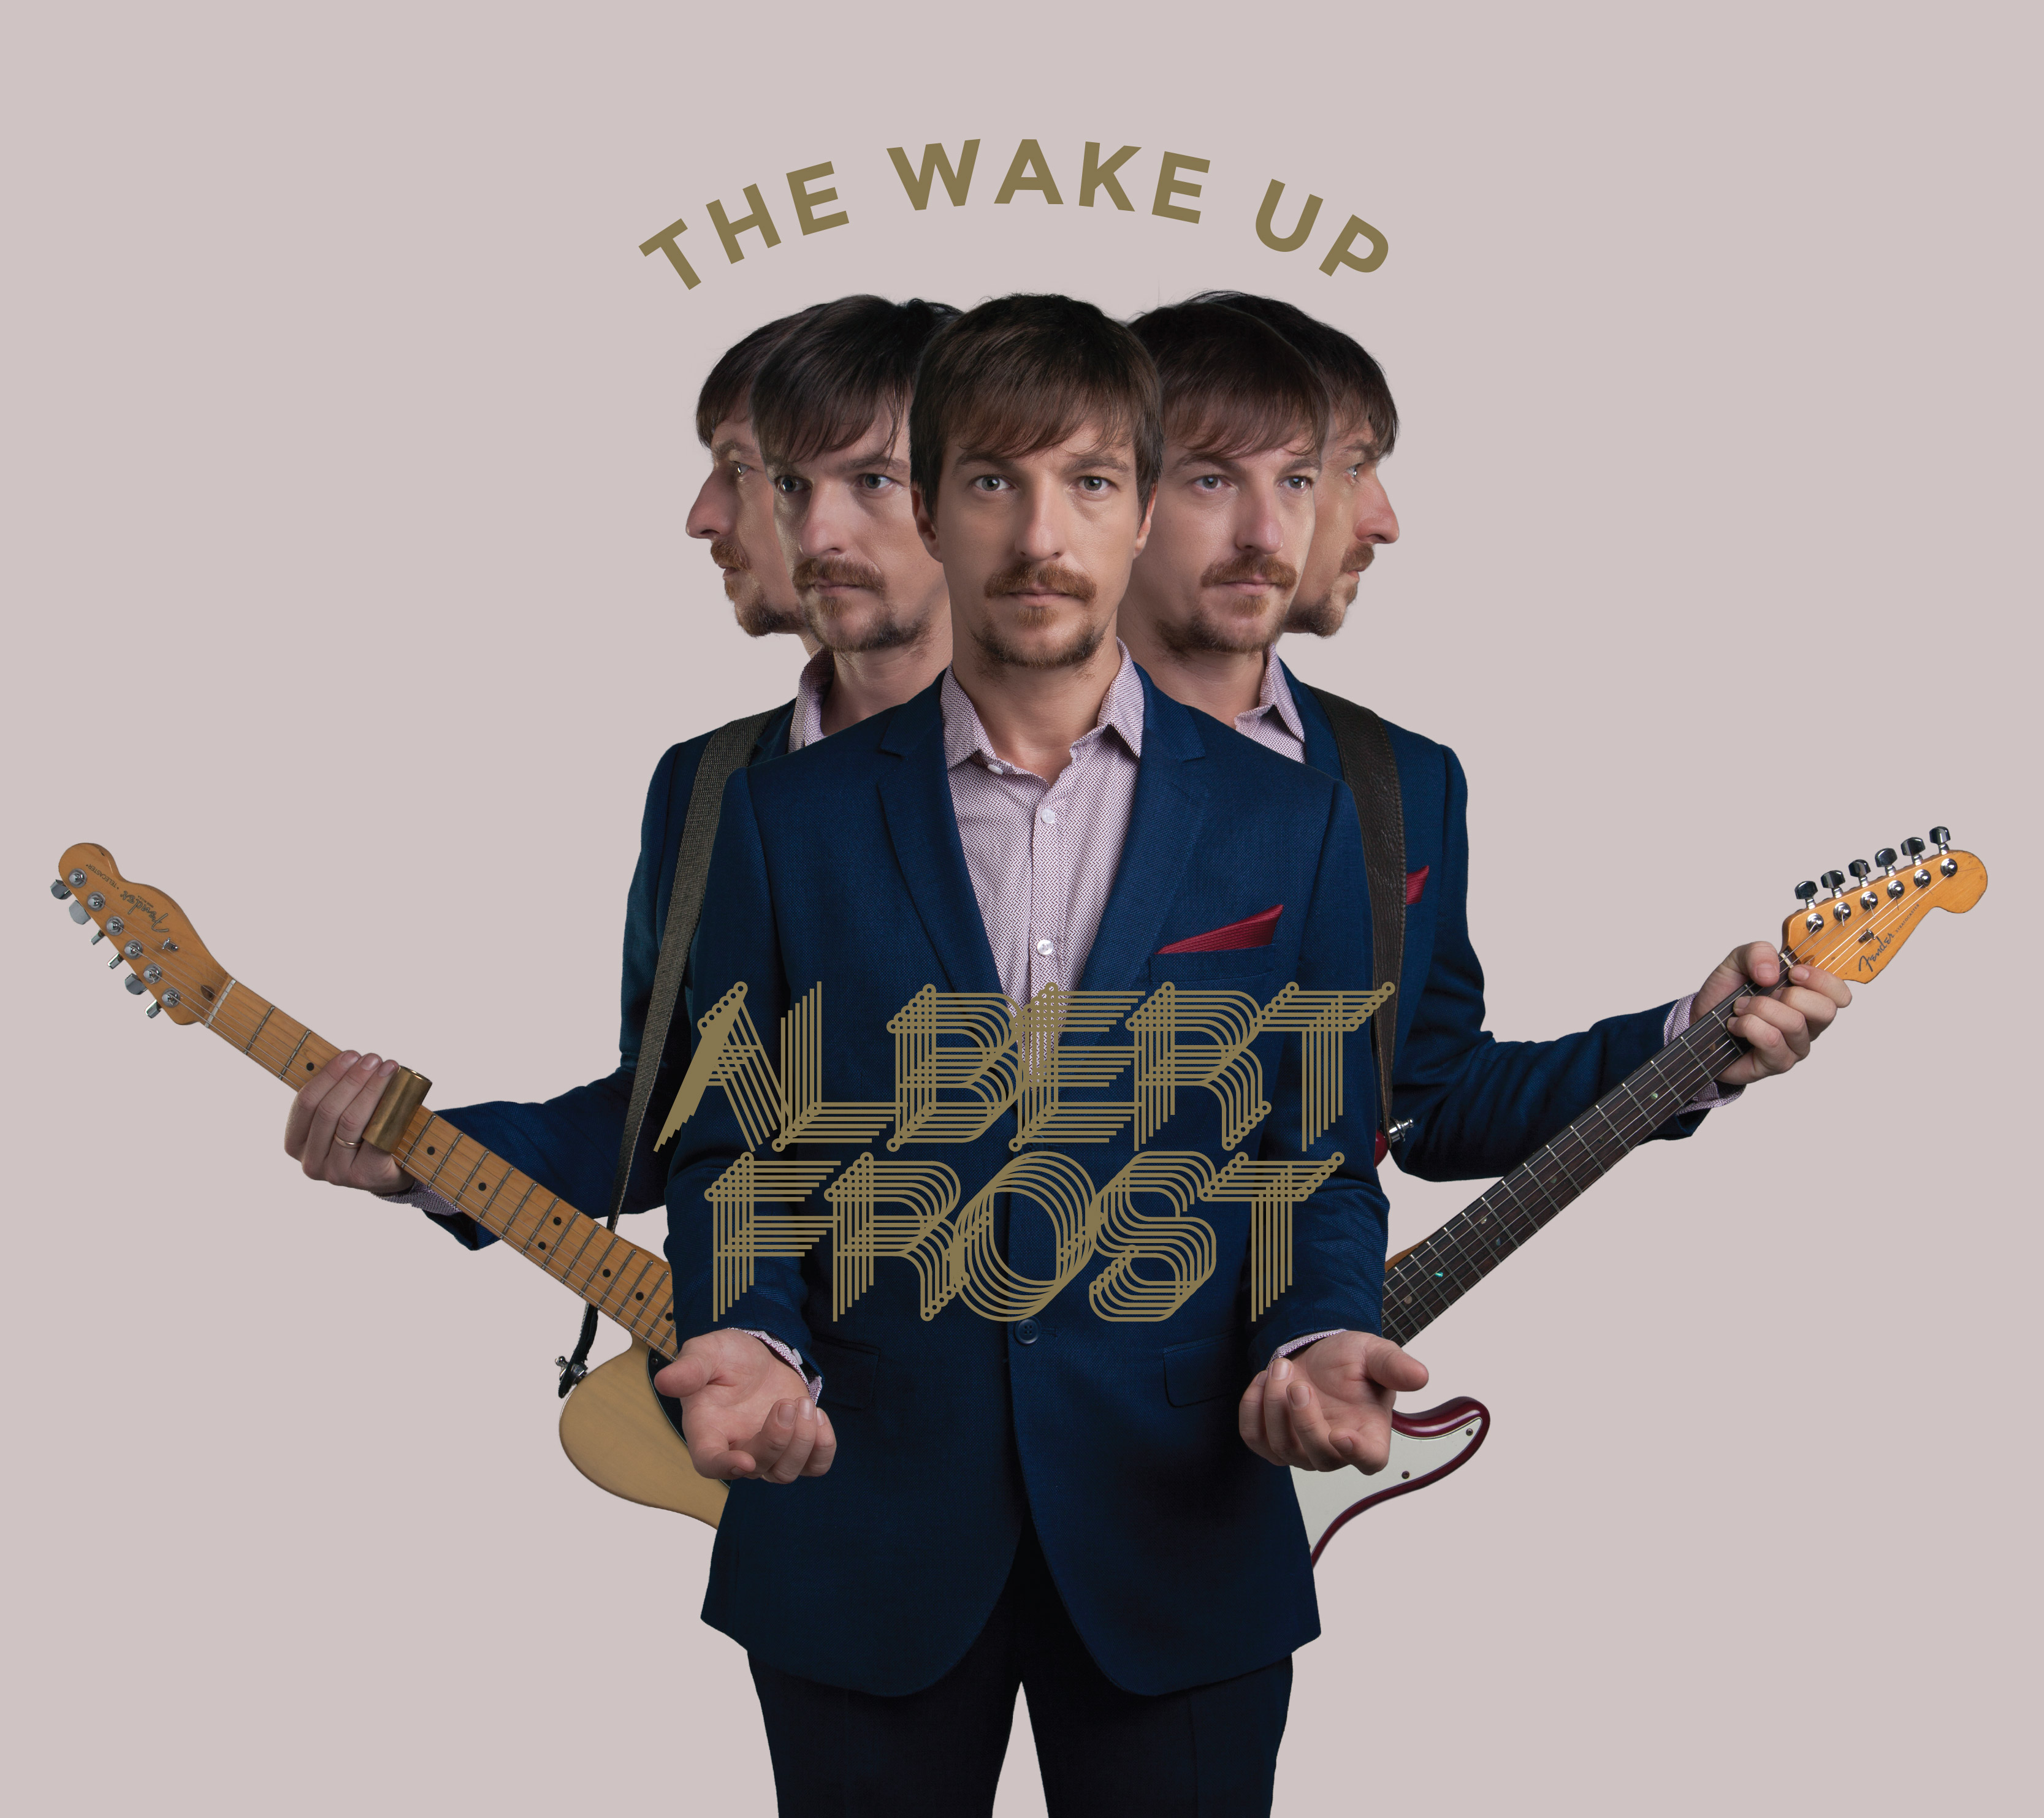 The Wake Up: Albert Frost talks about turning over a new leaf